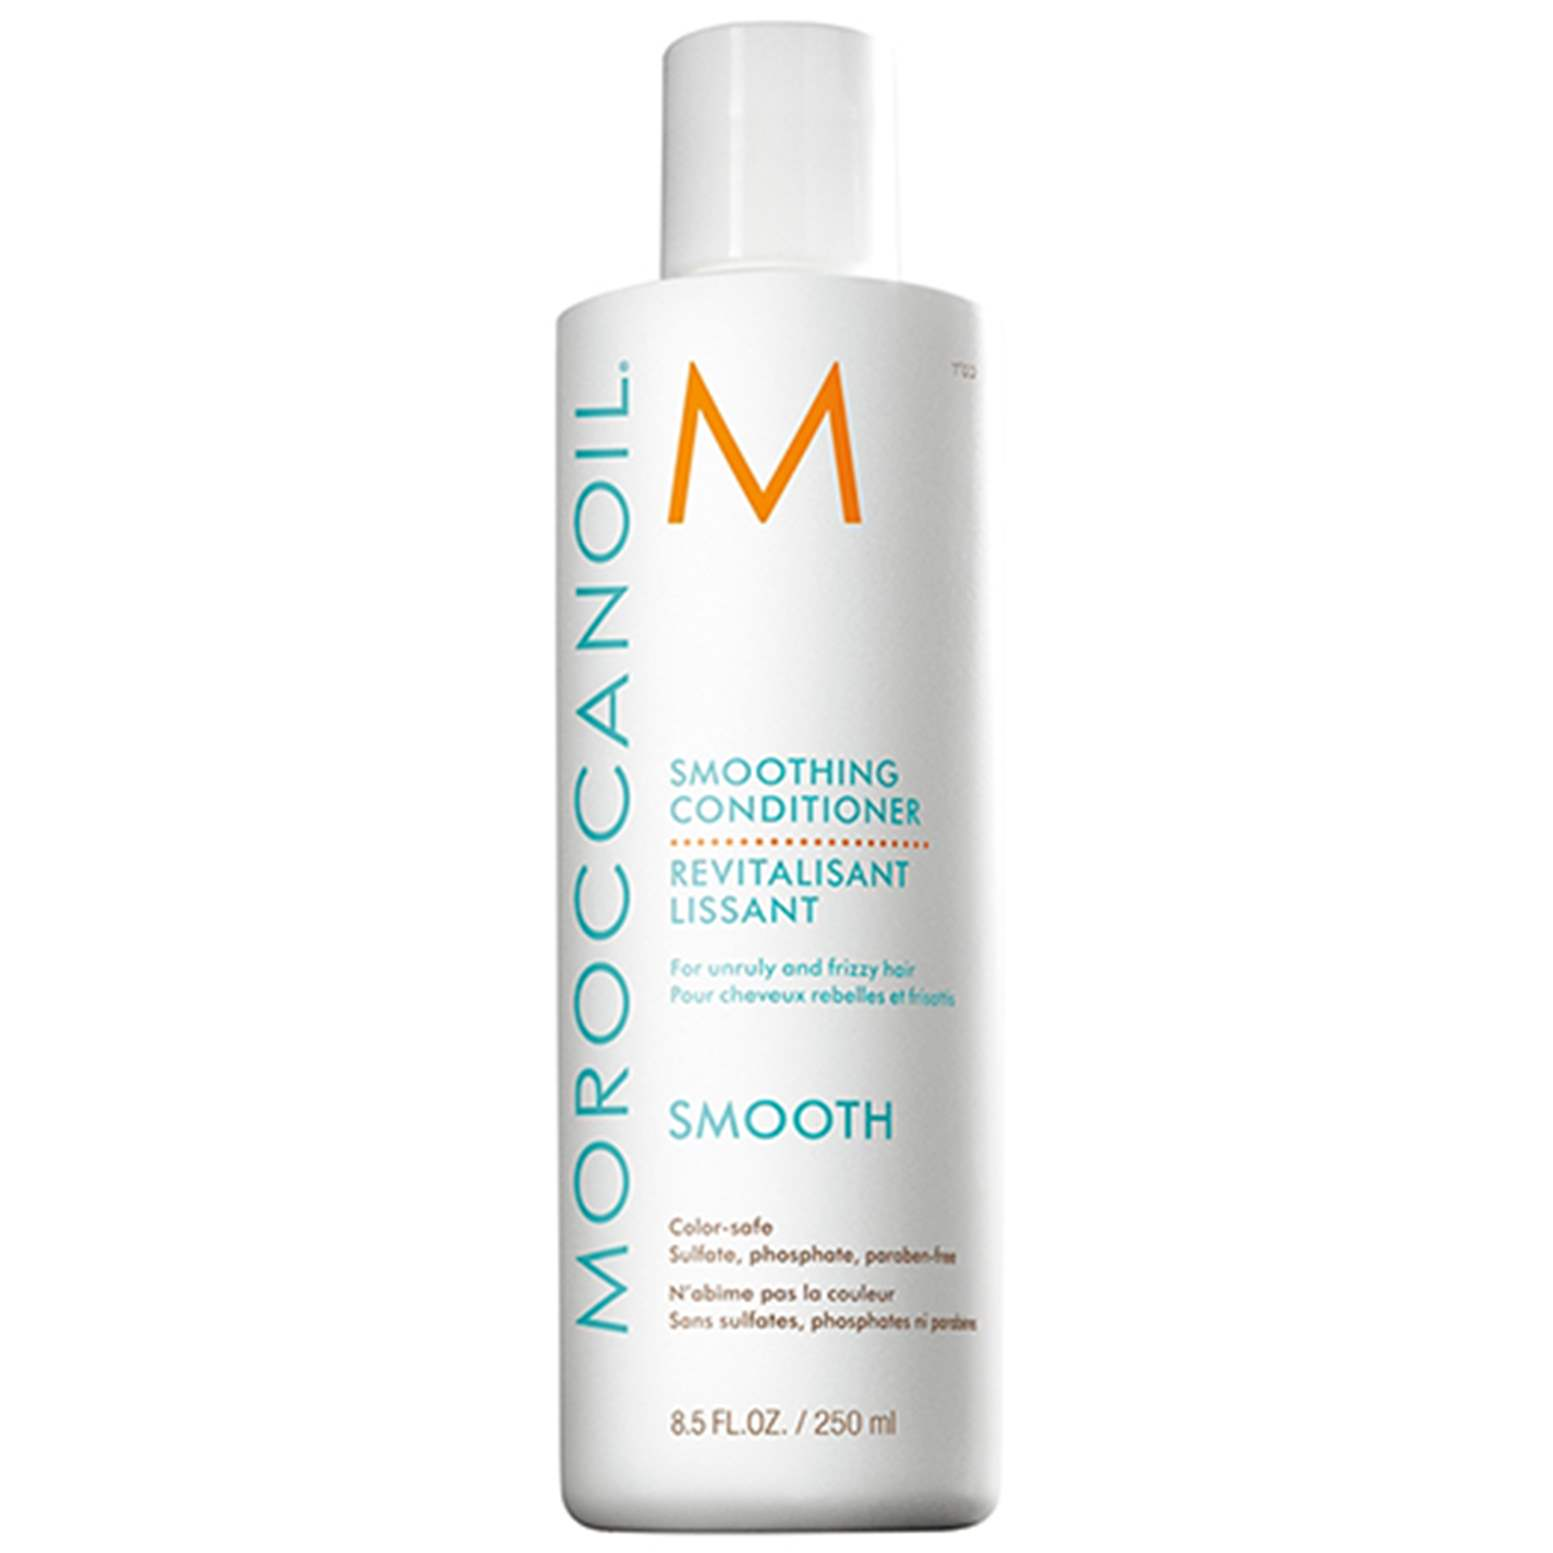 Moroccanoil Smooth Conditioner Lisciante 250ml